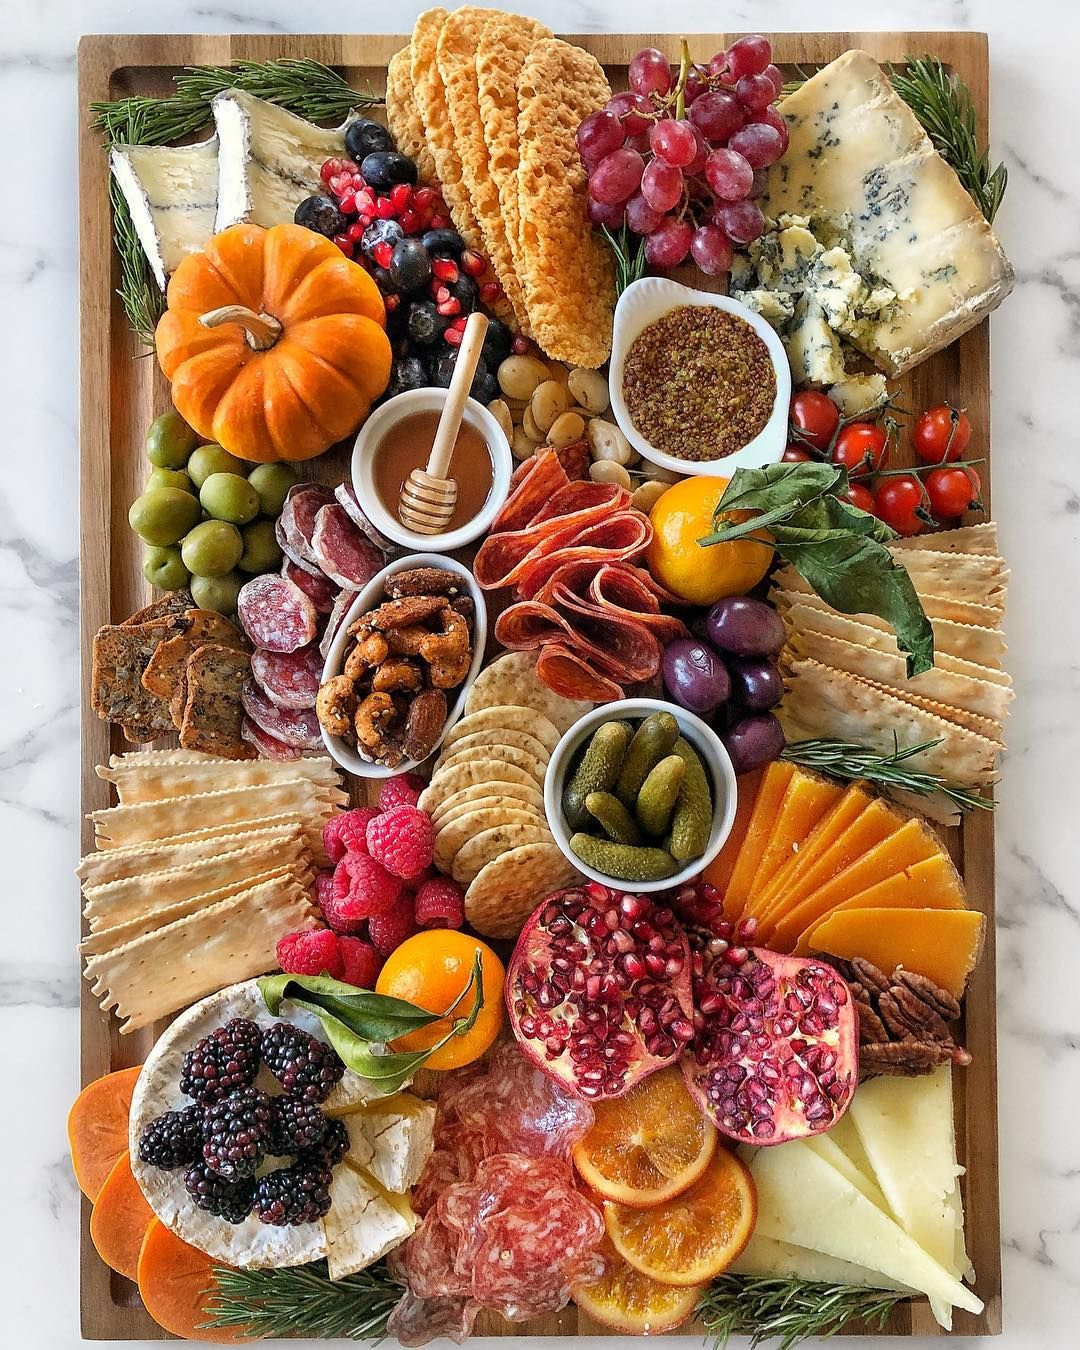 Thanksgiving Grazing Board By Ainttooproudtomeg Charcuterie Recipes Charcuterie And Cheese Board Party Food Platters